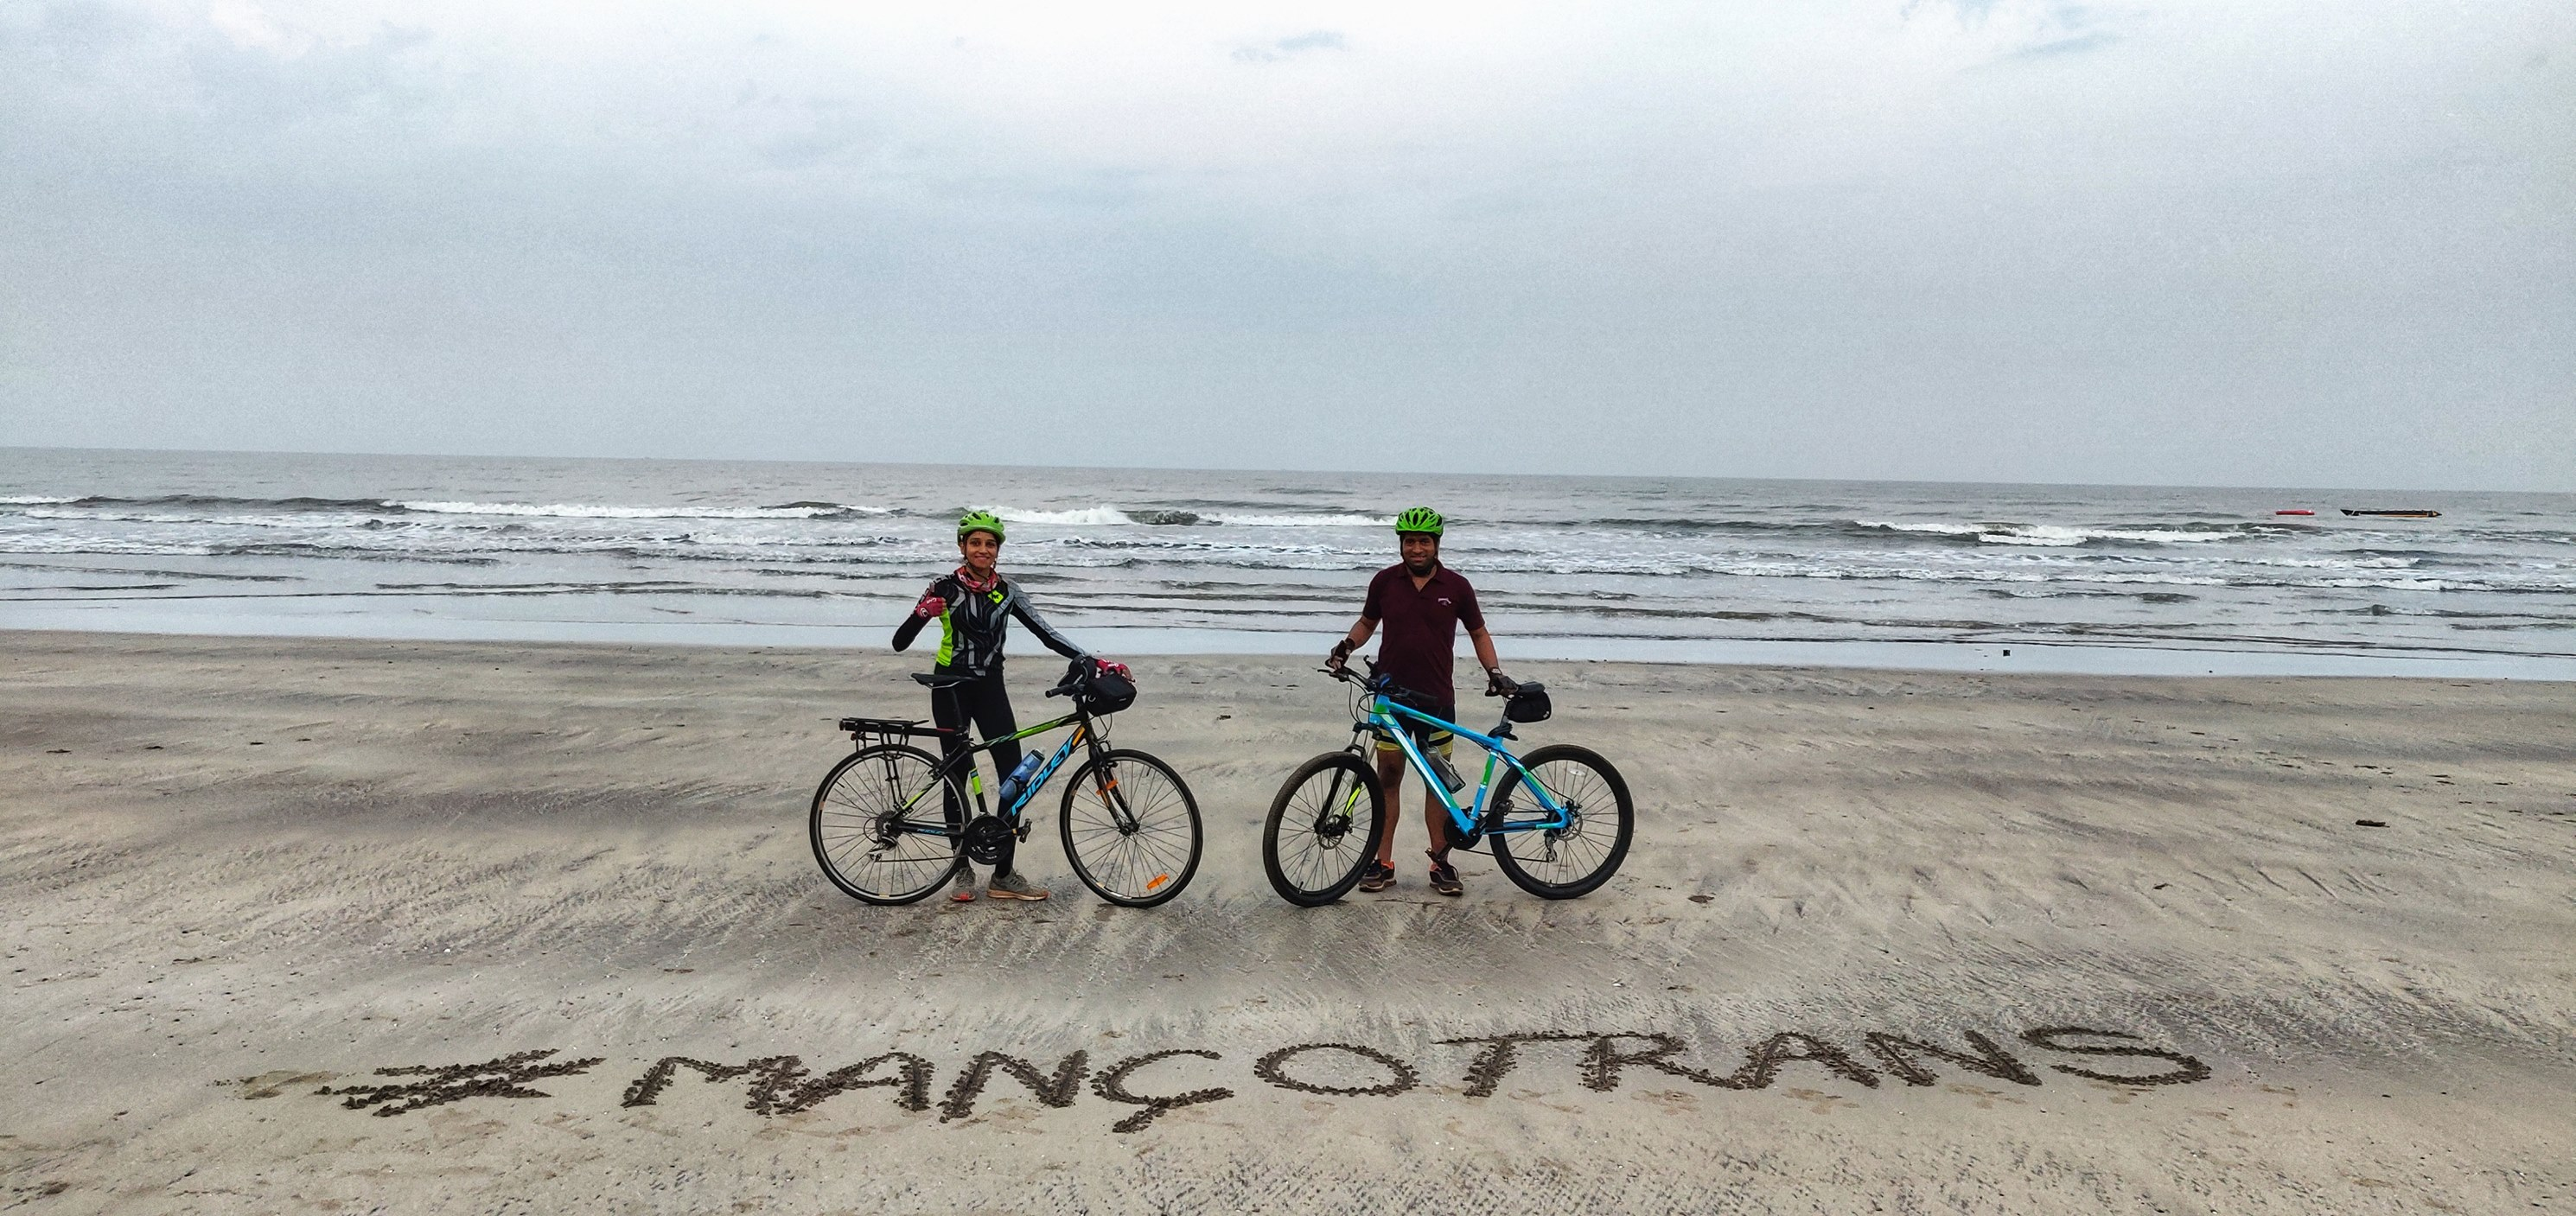 India's First Self-Supported Ultra Cycle Race    | Cycling Monks